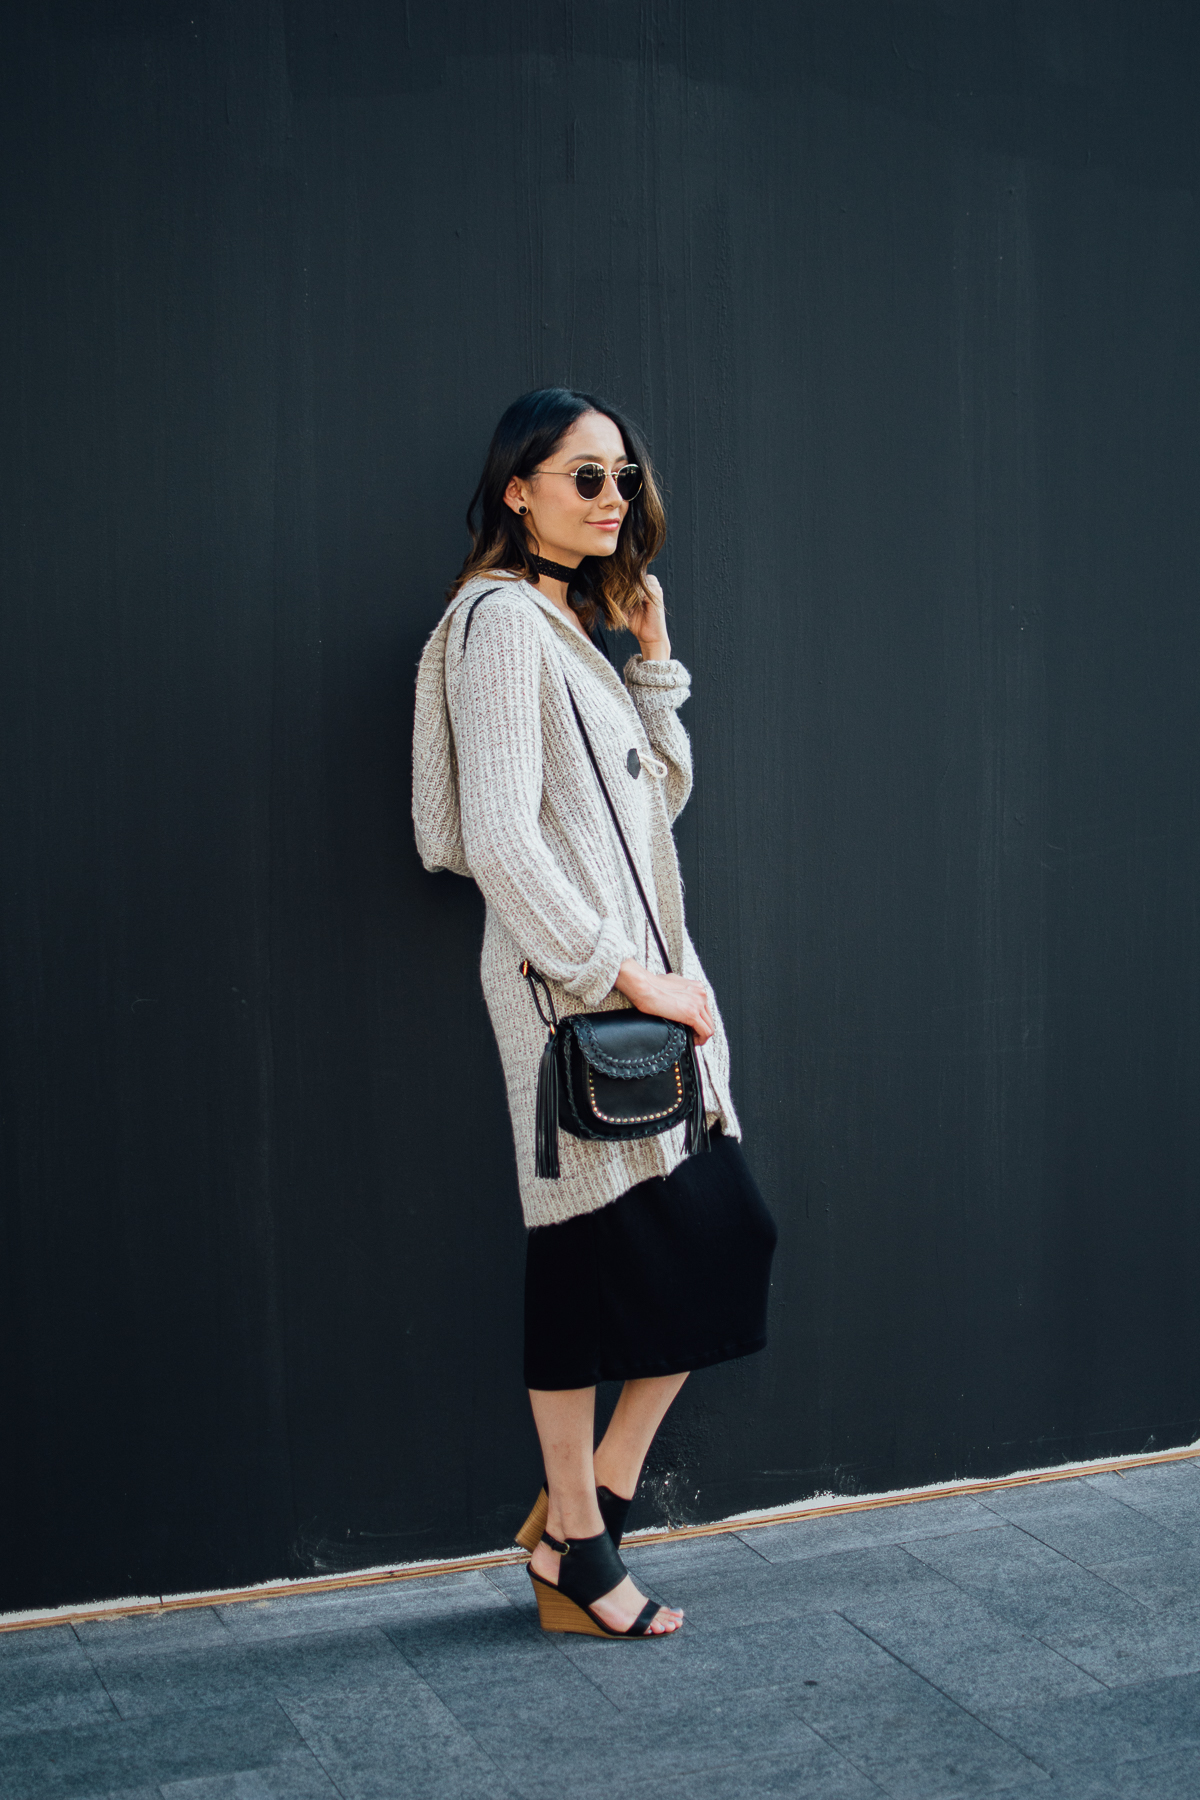 Lilly Beltran of Daily Craving wearing a black knit dress with a midi length hooded cardigan